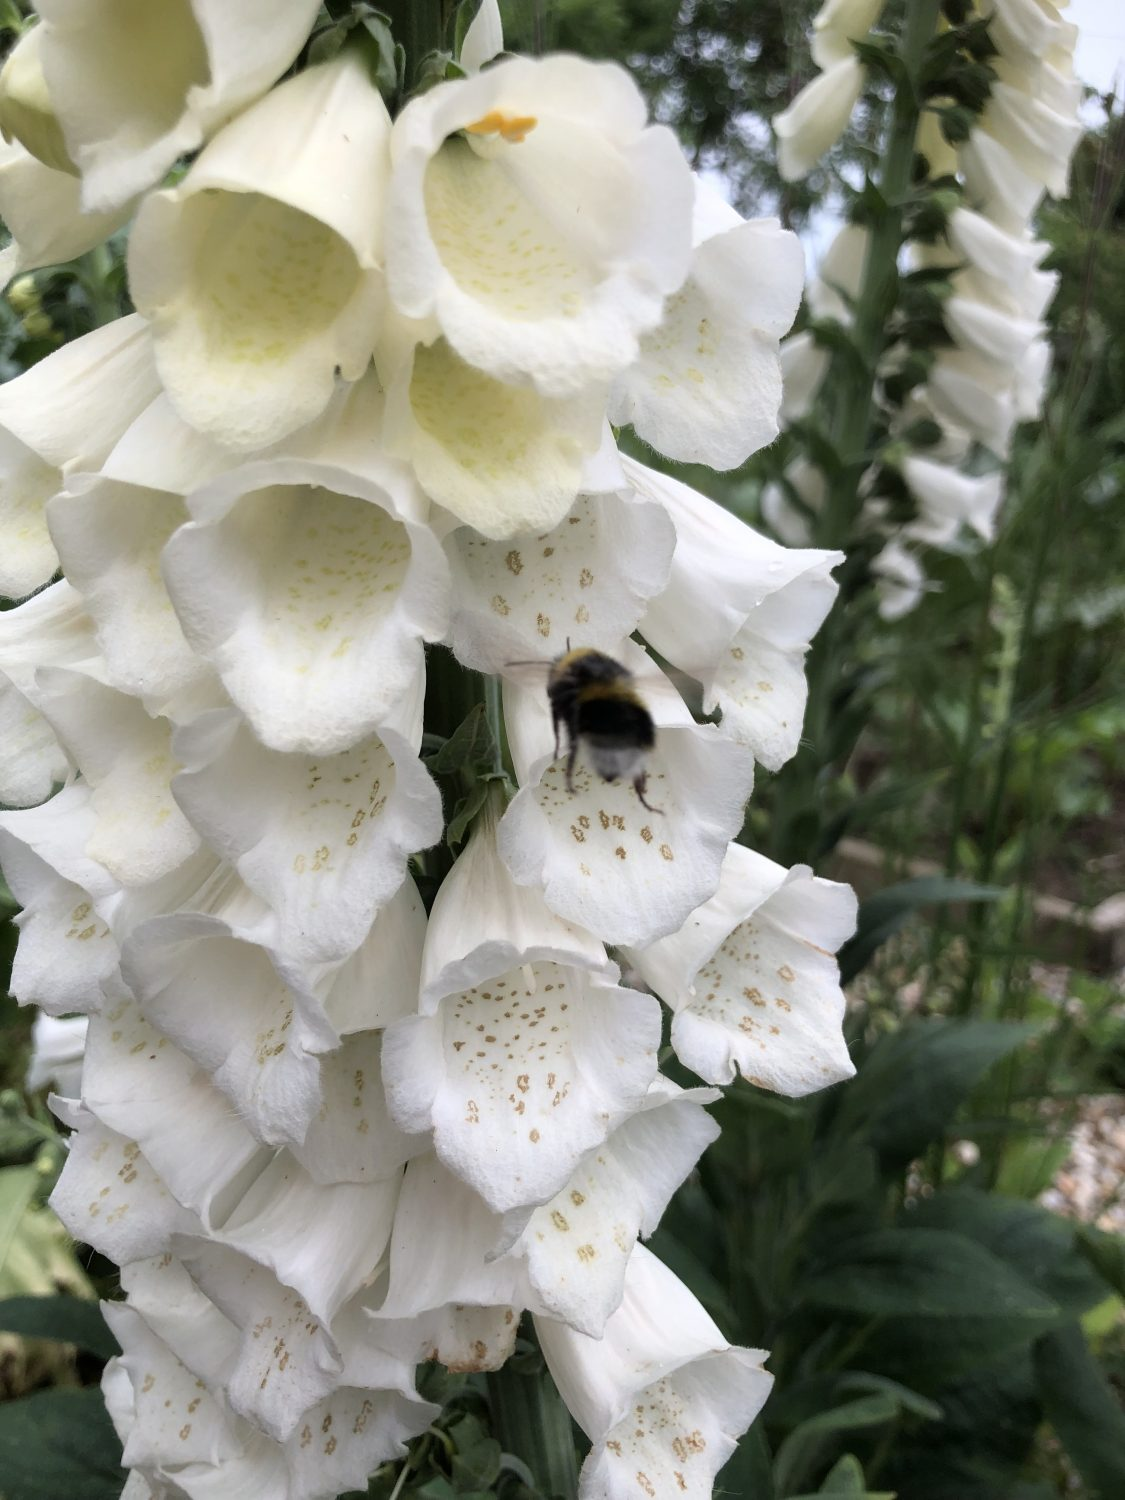 Foxgloves have spotted 'landing strips' designed to guide the bees into the flowers